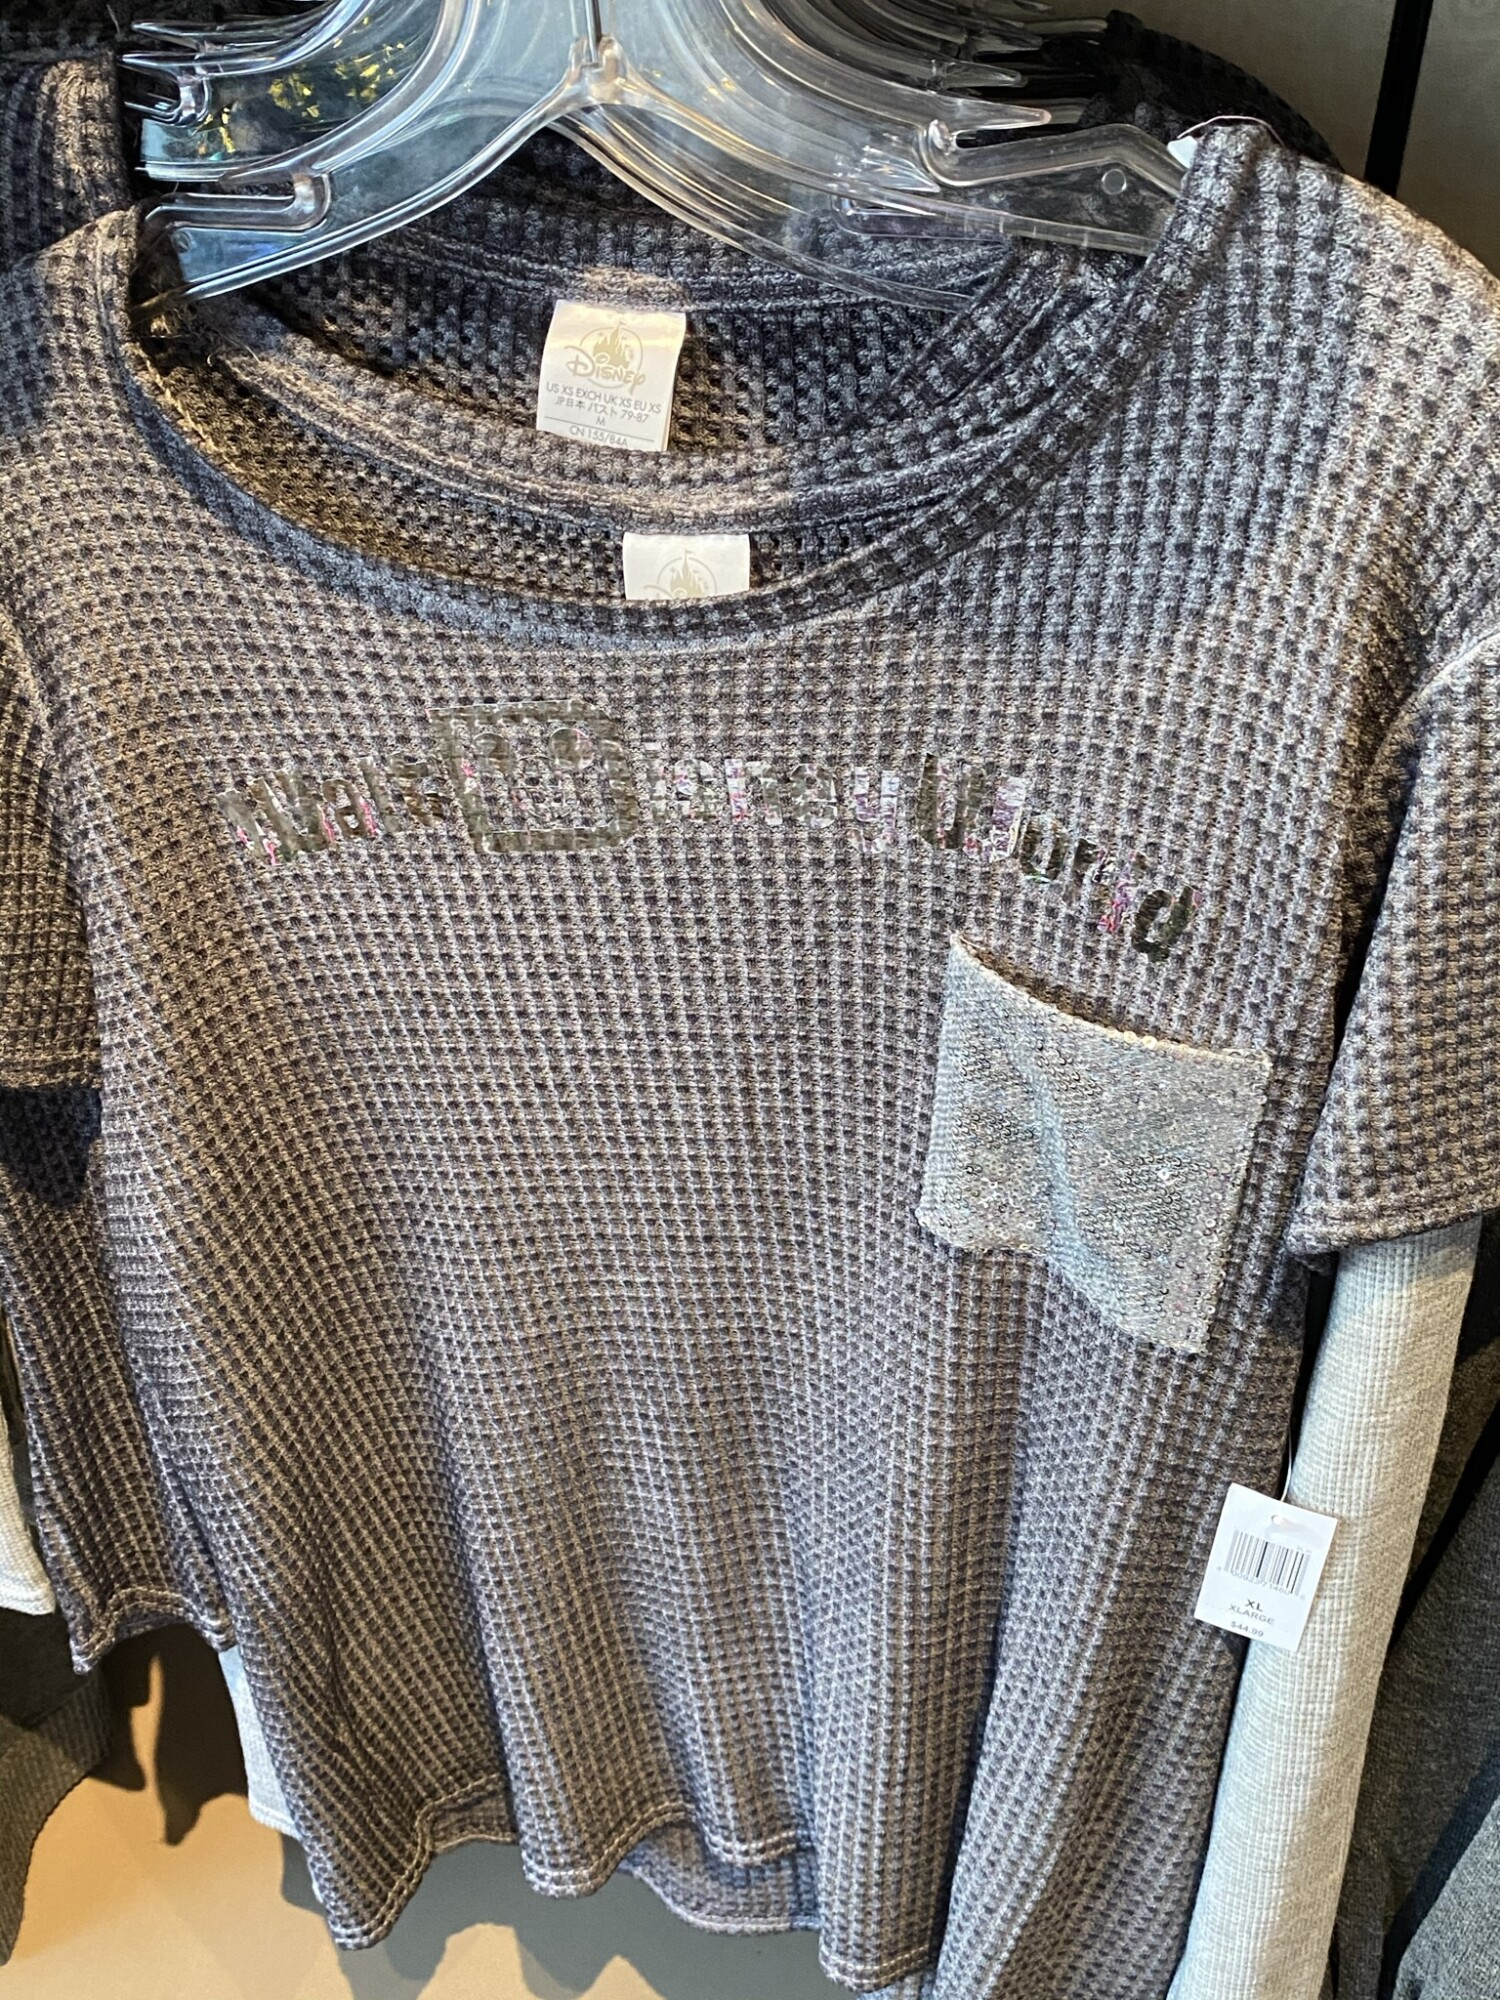 New Sparkly Silver Apparel at Hollywood Studios! 11